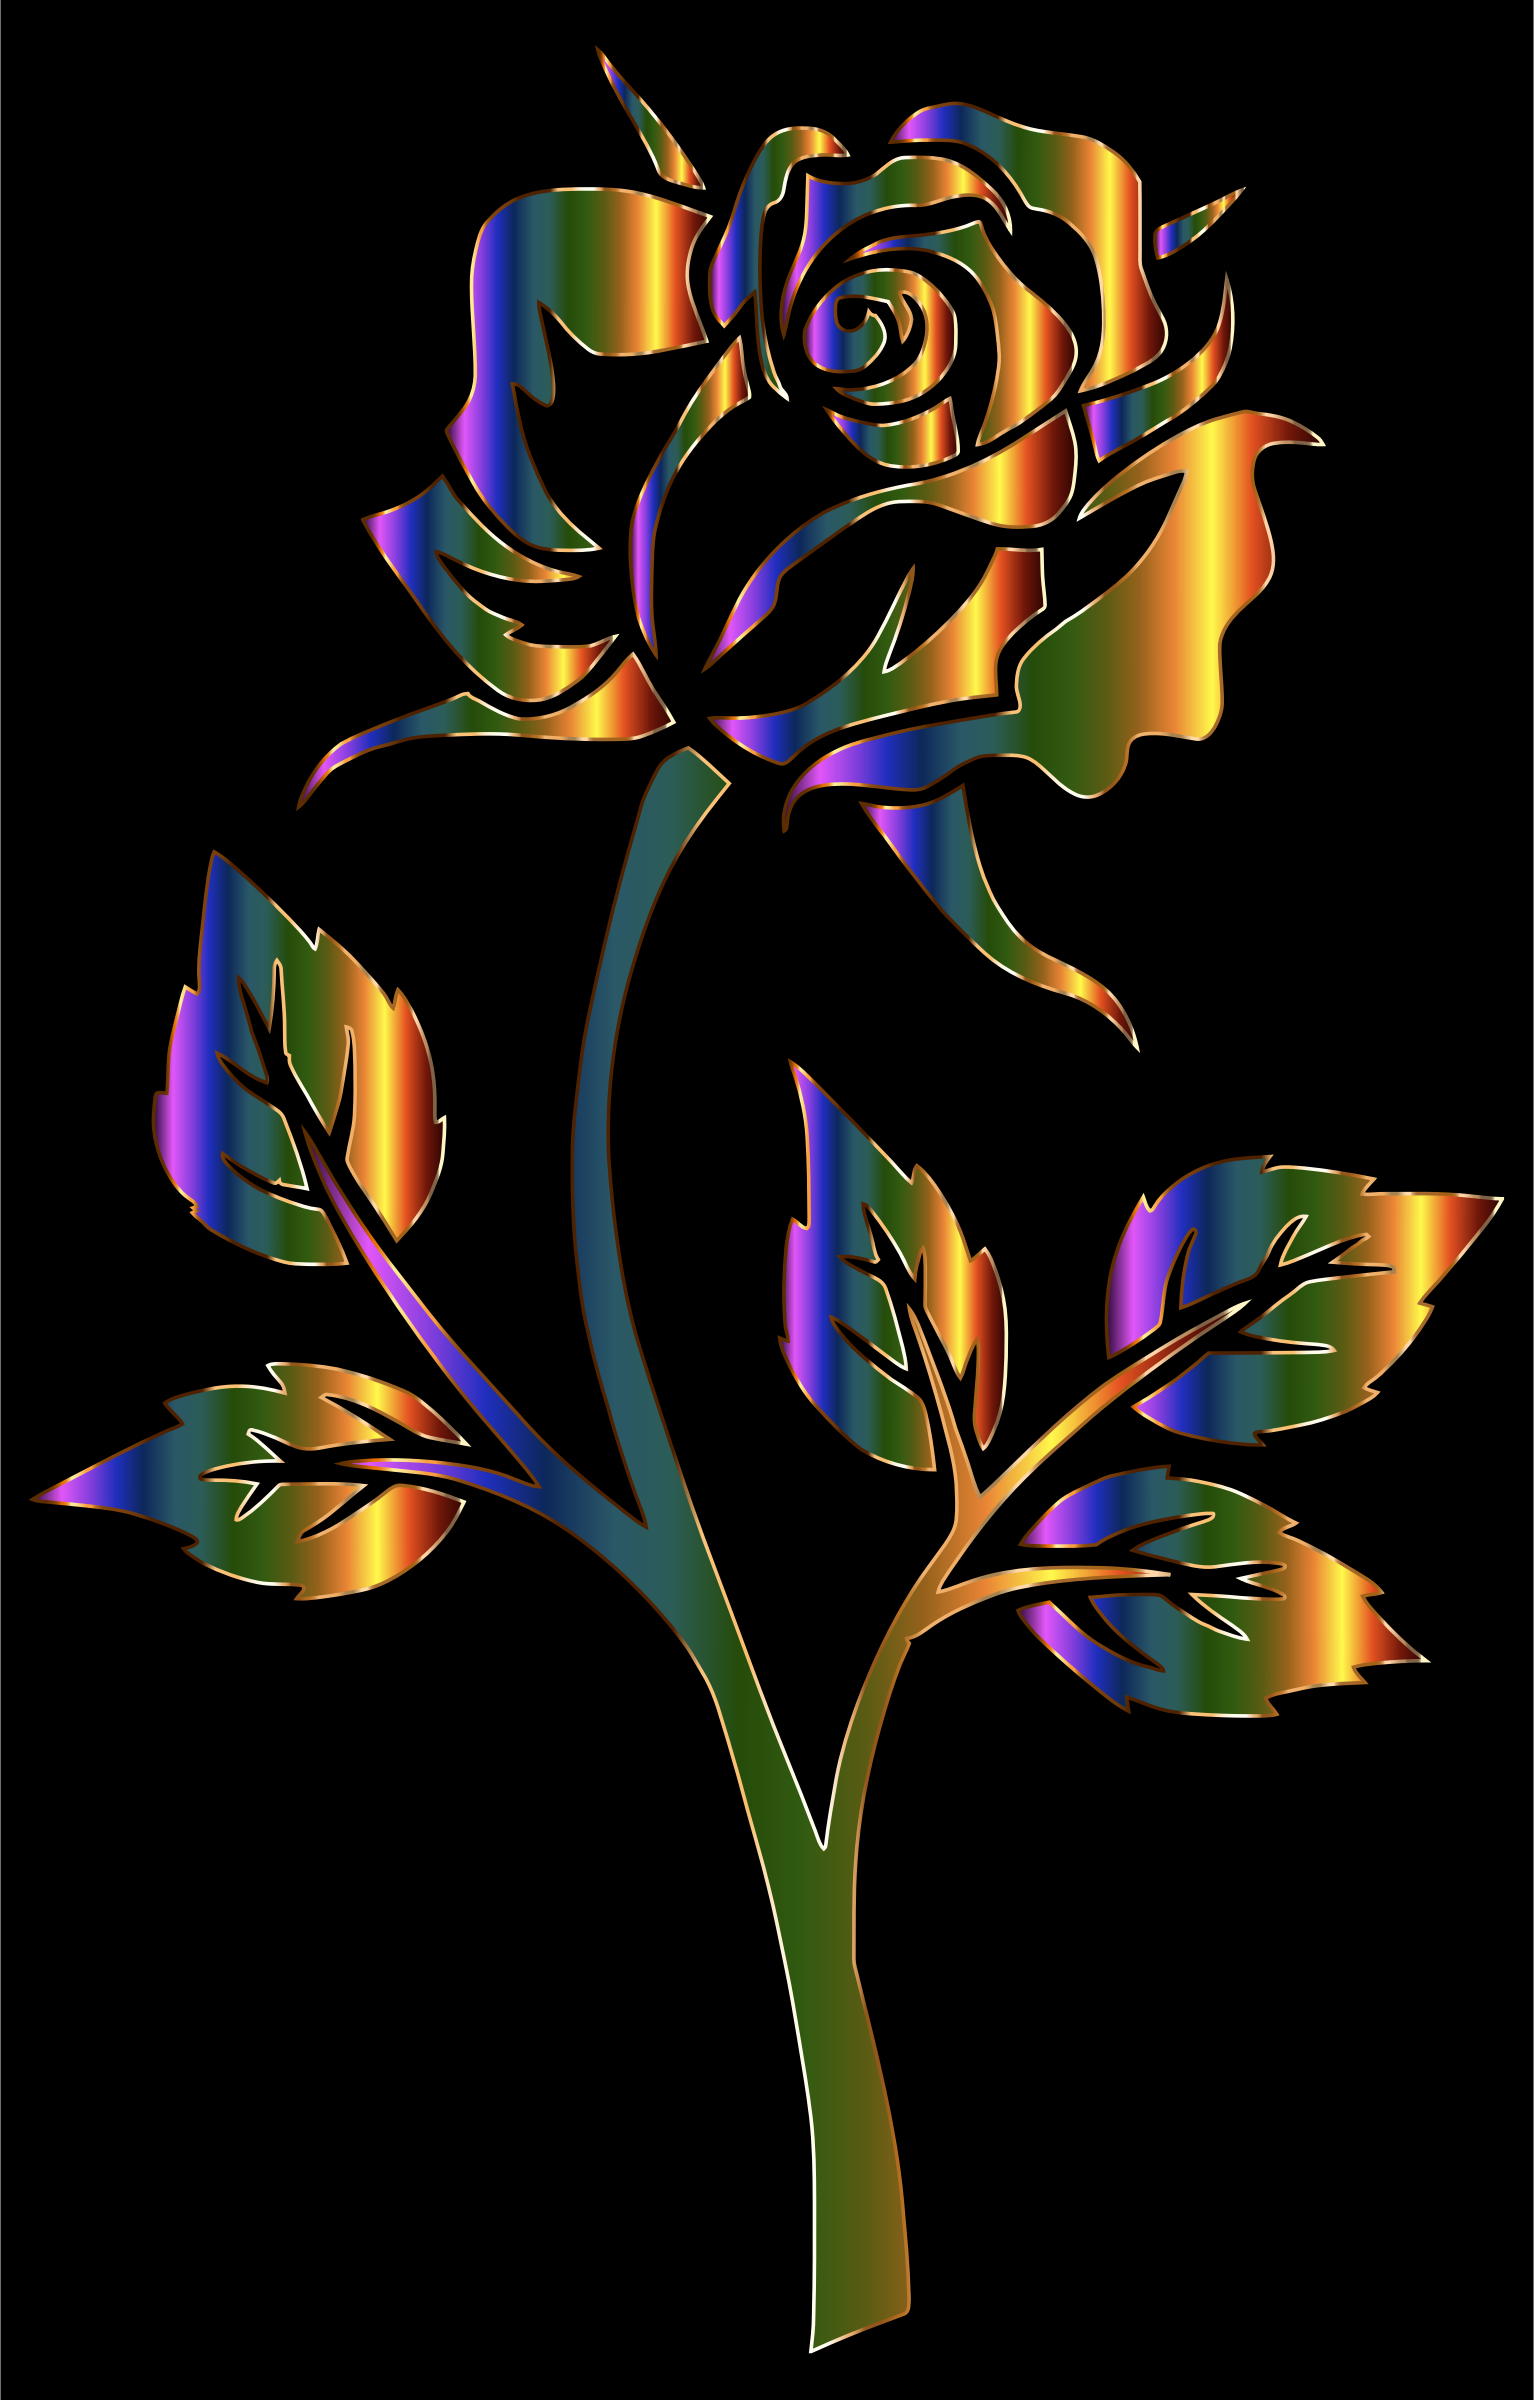 Chromatic Rose Silhouette by GDJ